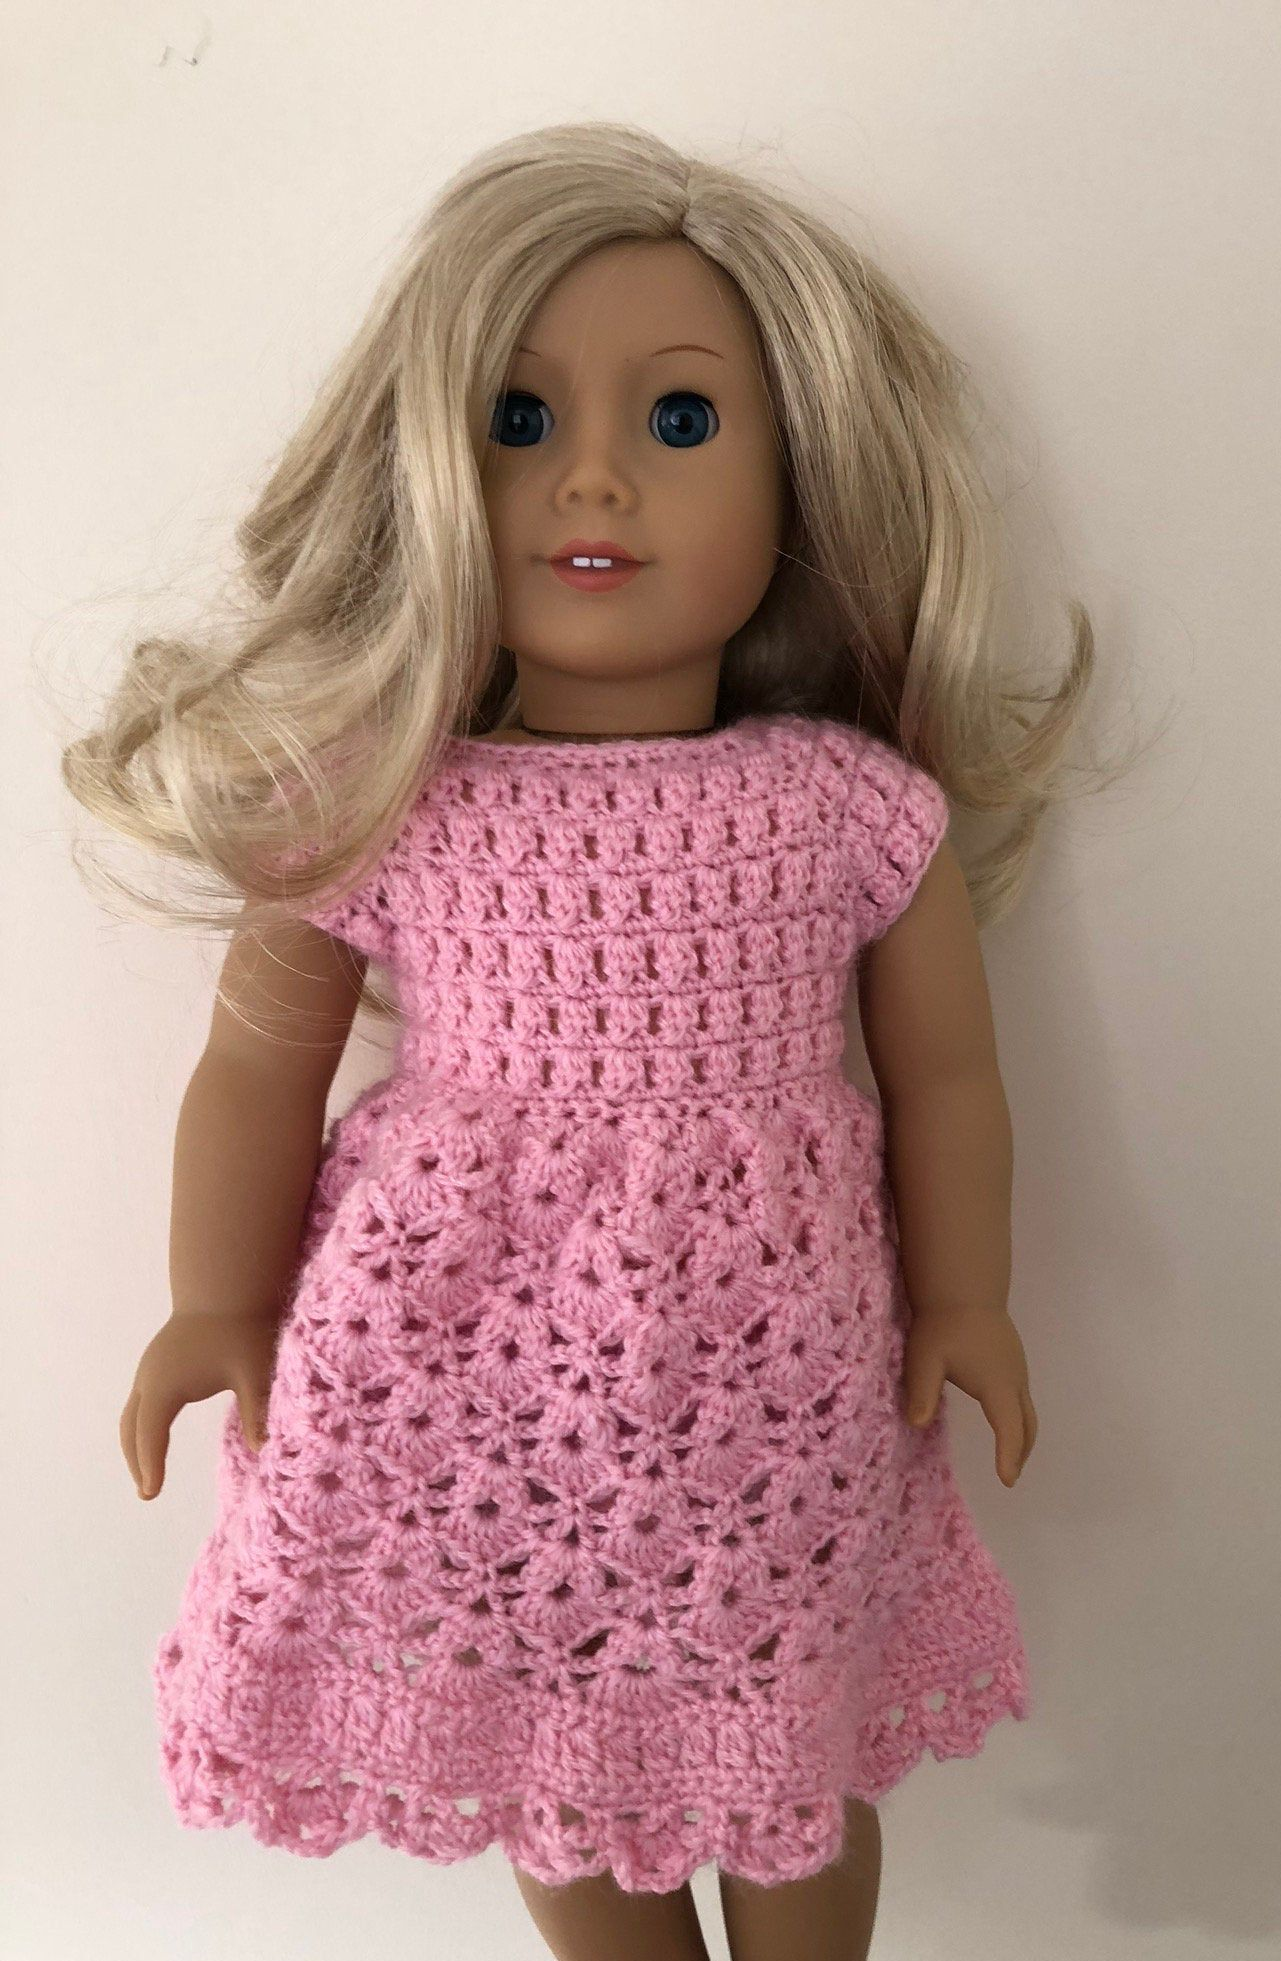 Pink doll dress. 18 inch doll dress. Hand crocheted dress for 18 doll such as American Girl. Doll outfit. Dolls clothes #18inchdollsandclothes